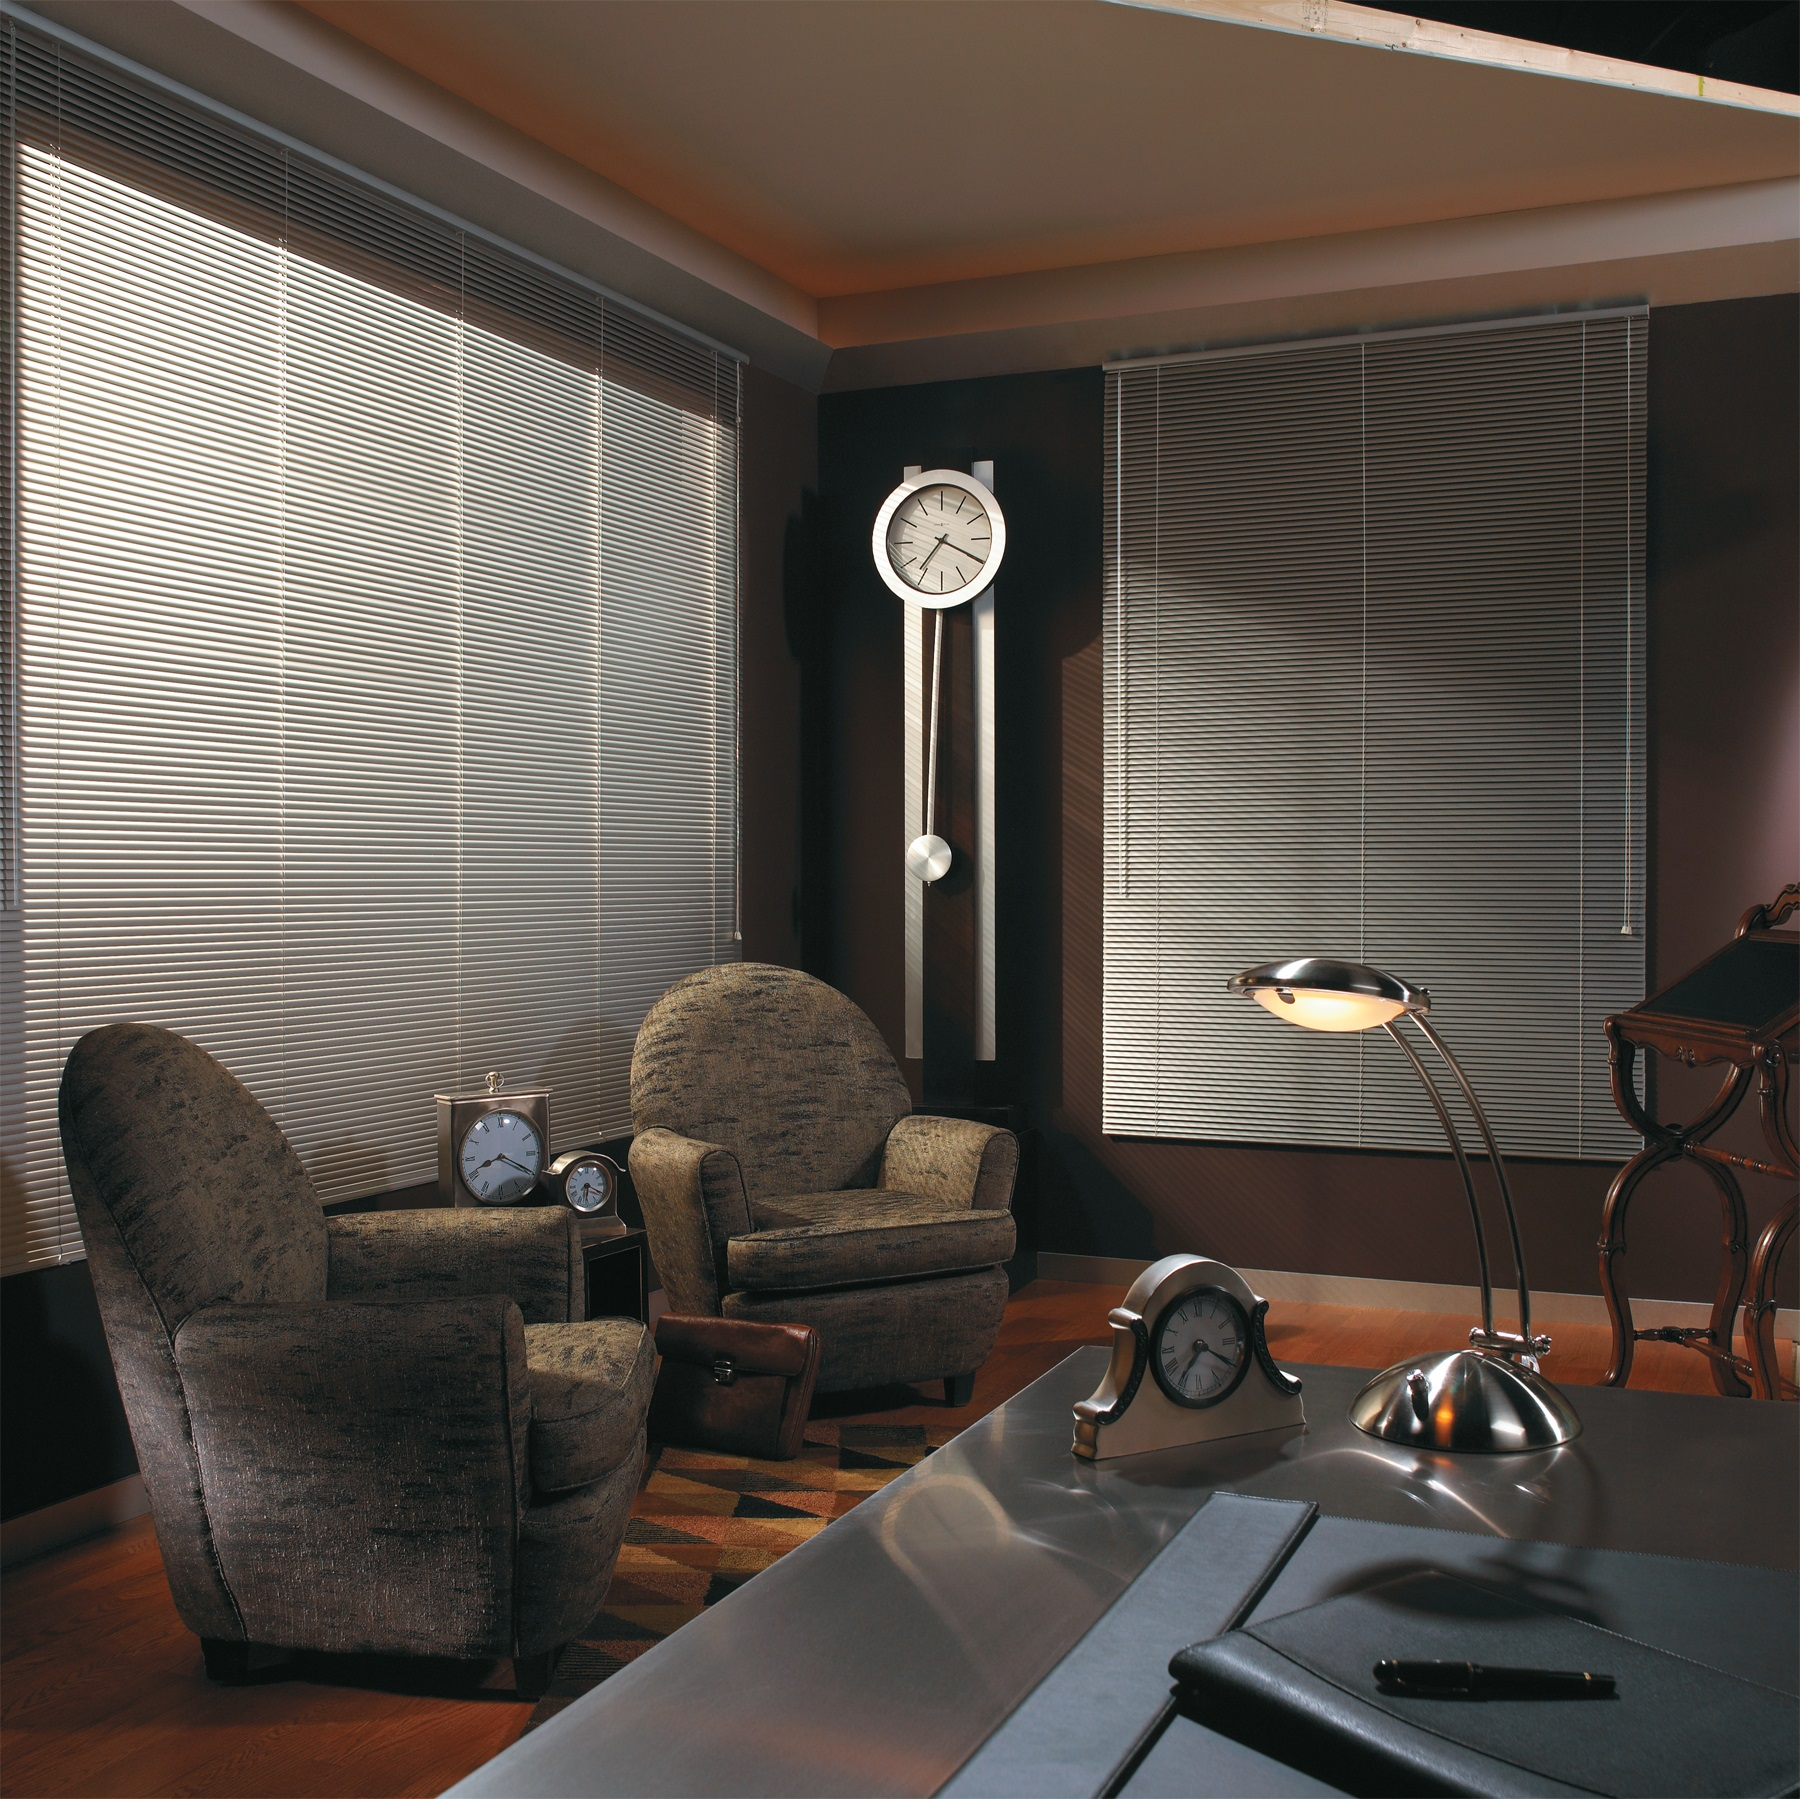 The most versatile of all window treatments, Horizontal Blinds provide excellent privacy and light control, as well as a wide selection of color and design choices.